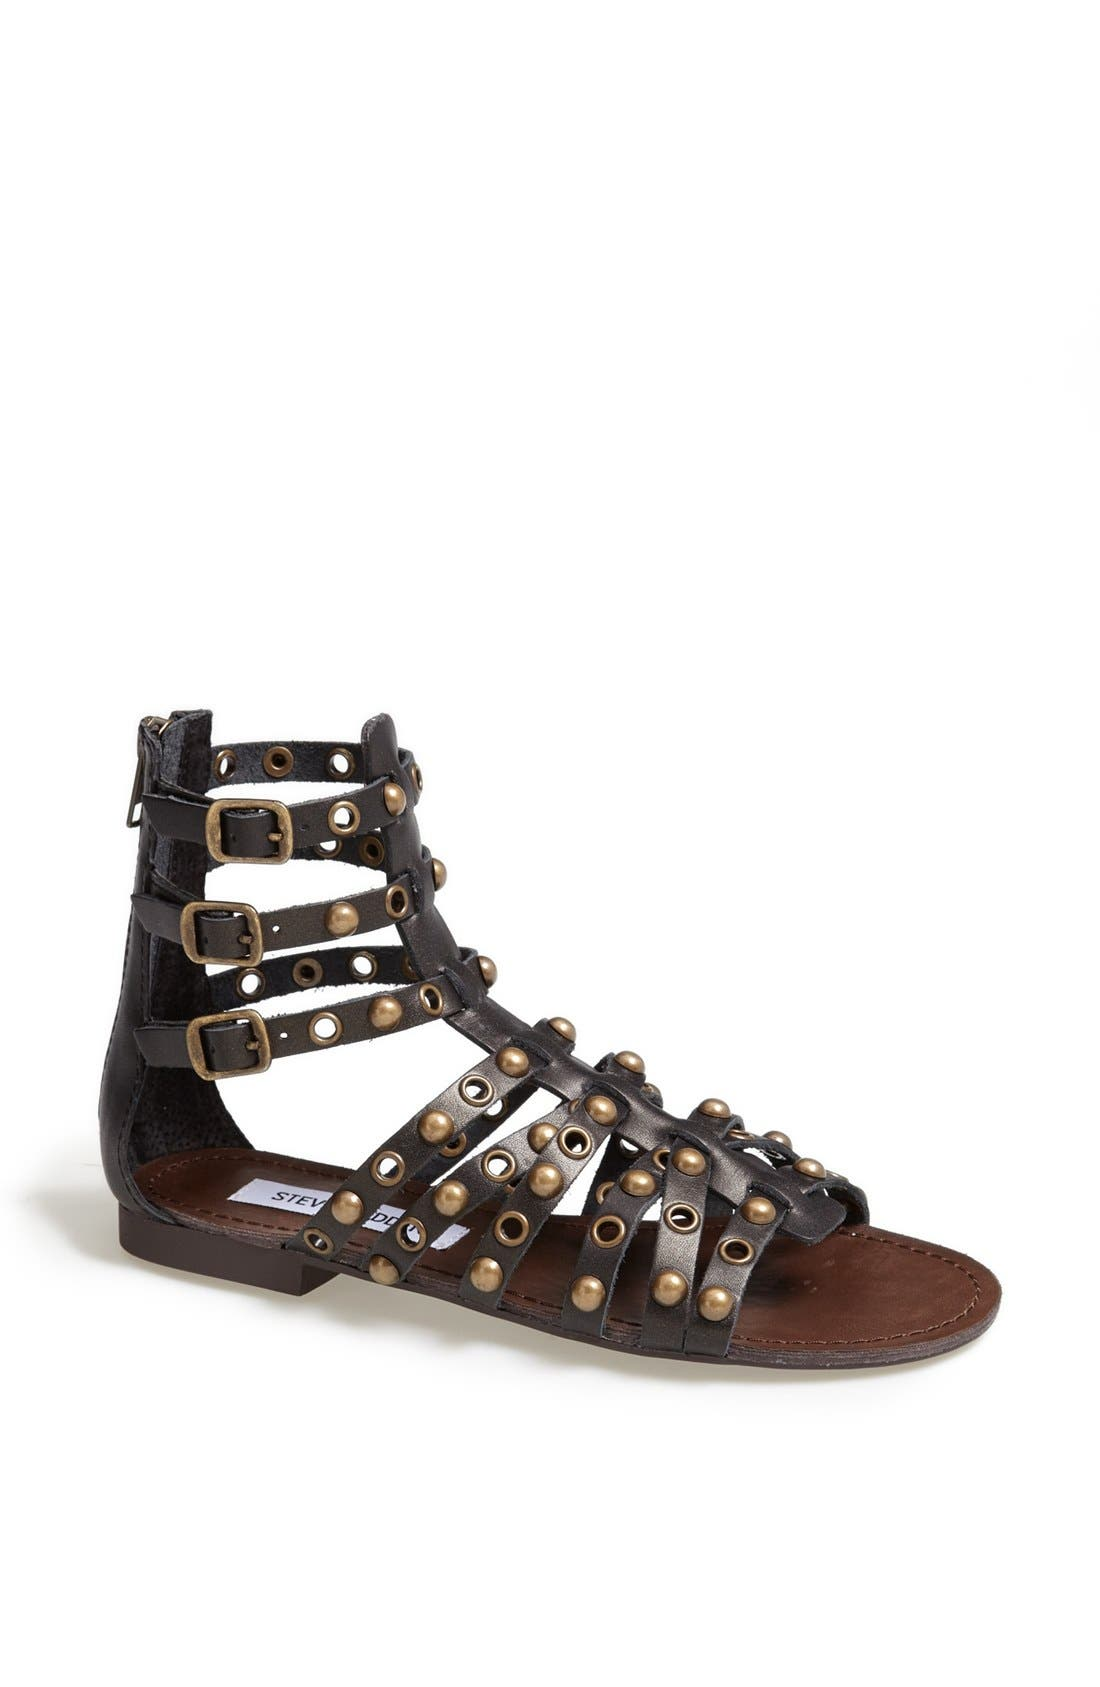 Alternate Image 1 Selected - Steve Madden 'Plato-S' Sandal